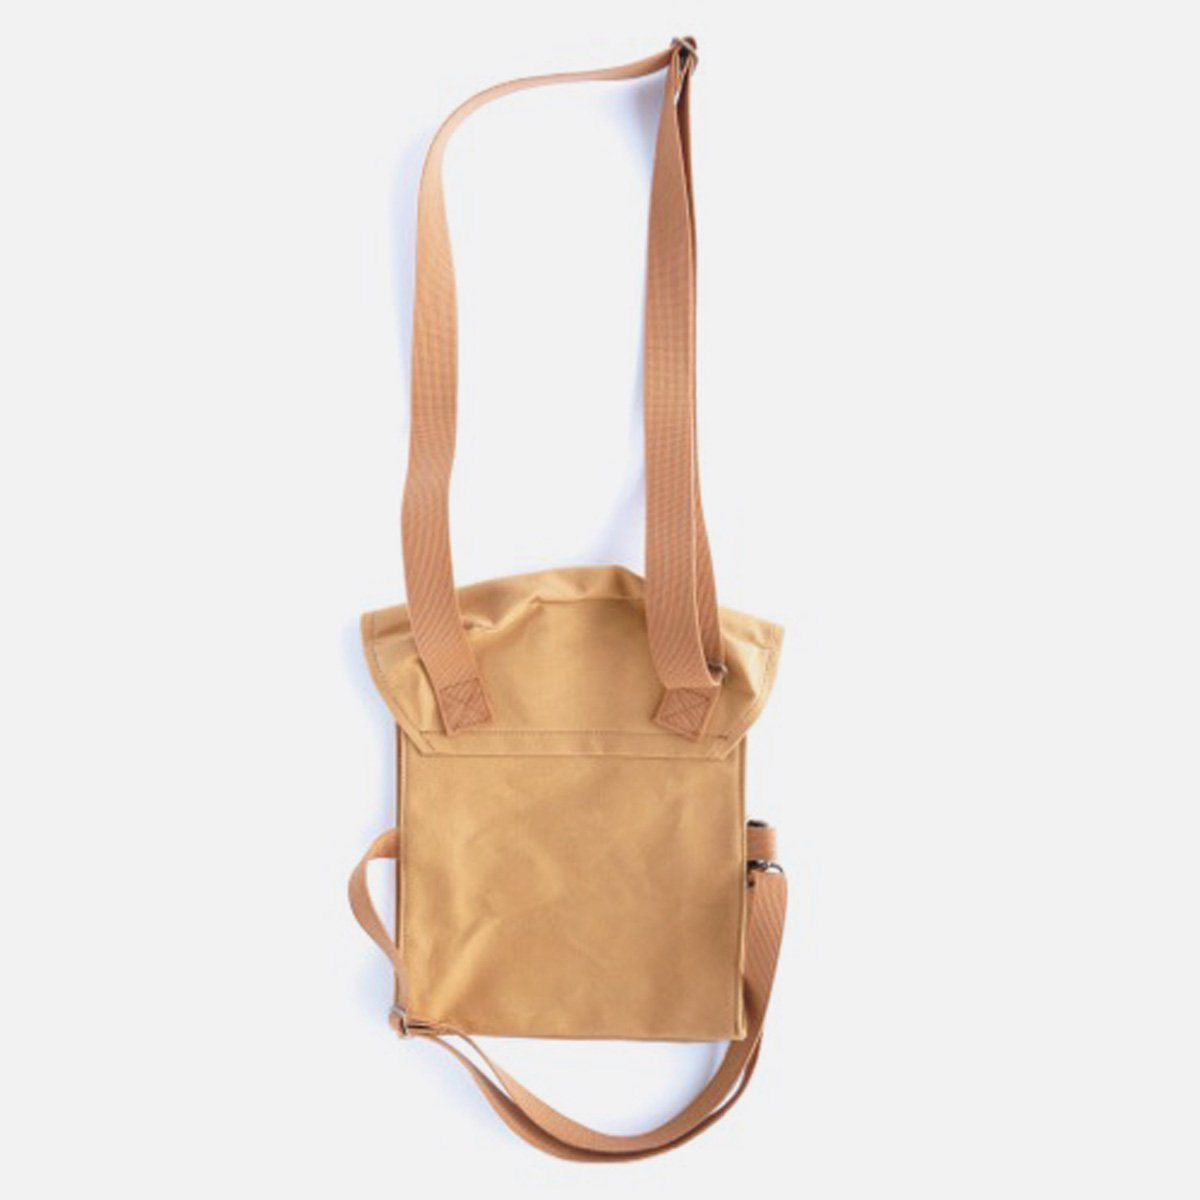 SOUTH2 WEST8 Bandage Bag -Cotton Canvas- (SUNTAN)2